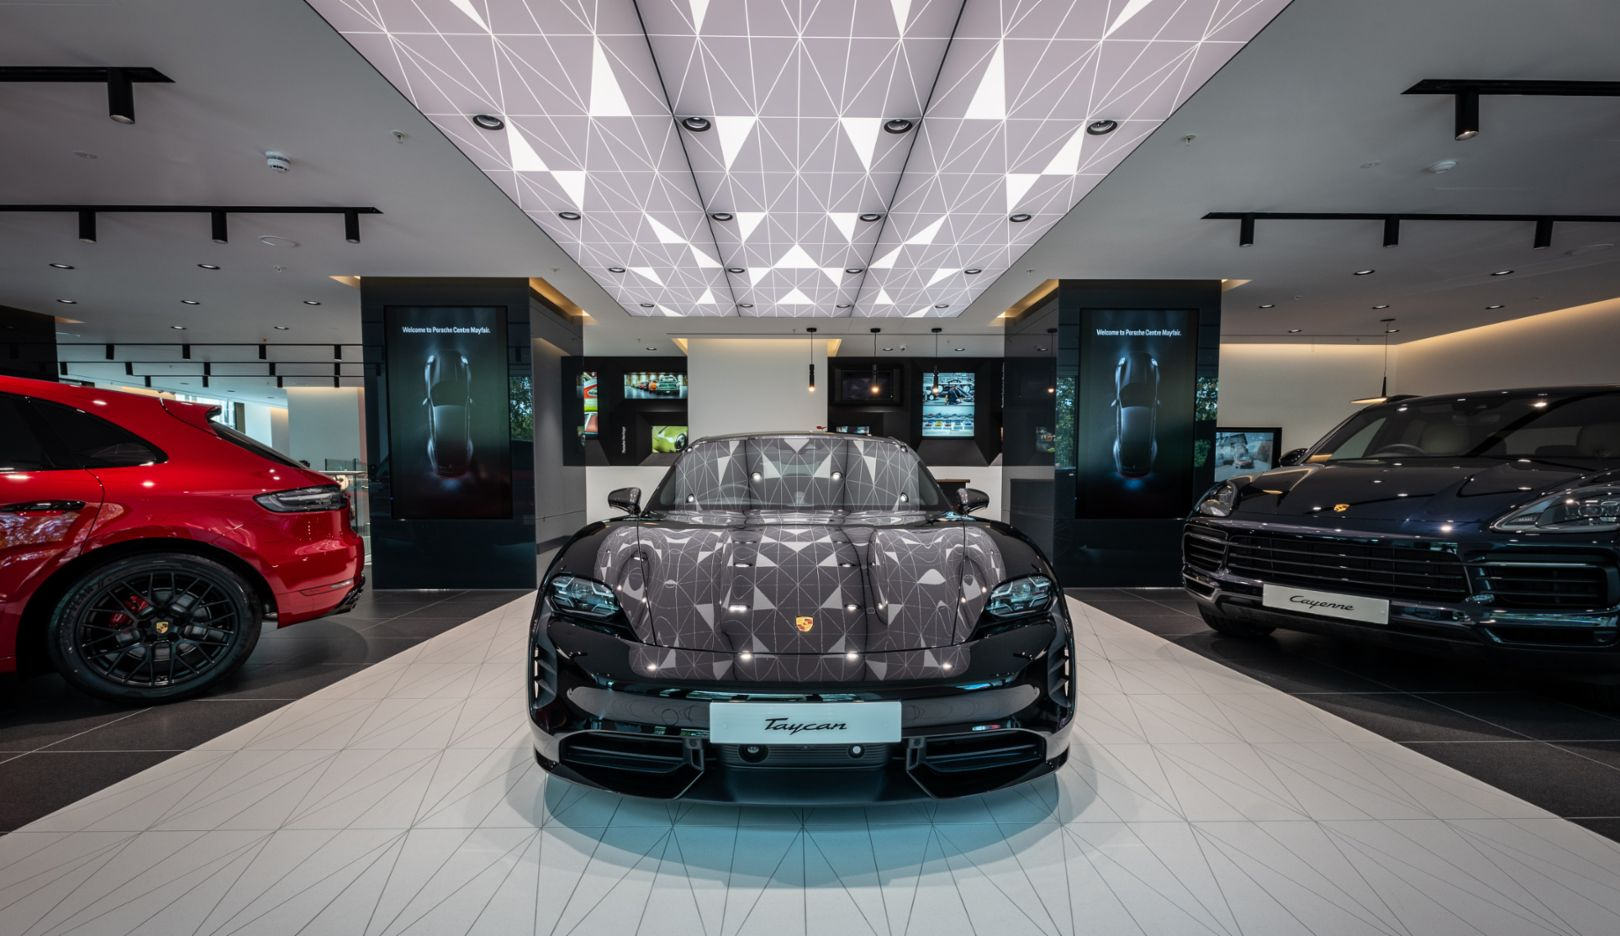 Welcome to the new Porsche Centre Mayfair. Porsche DNA in every detail. Now open on Clarges Street.